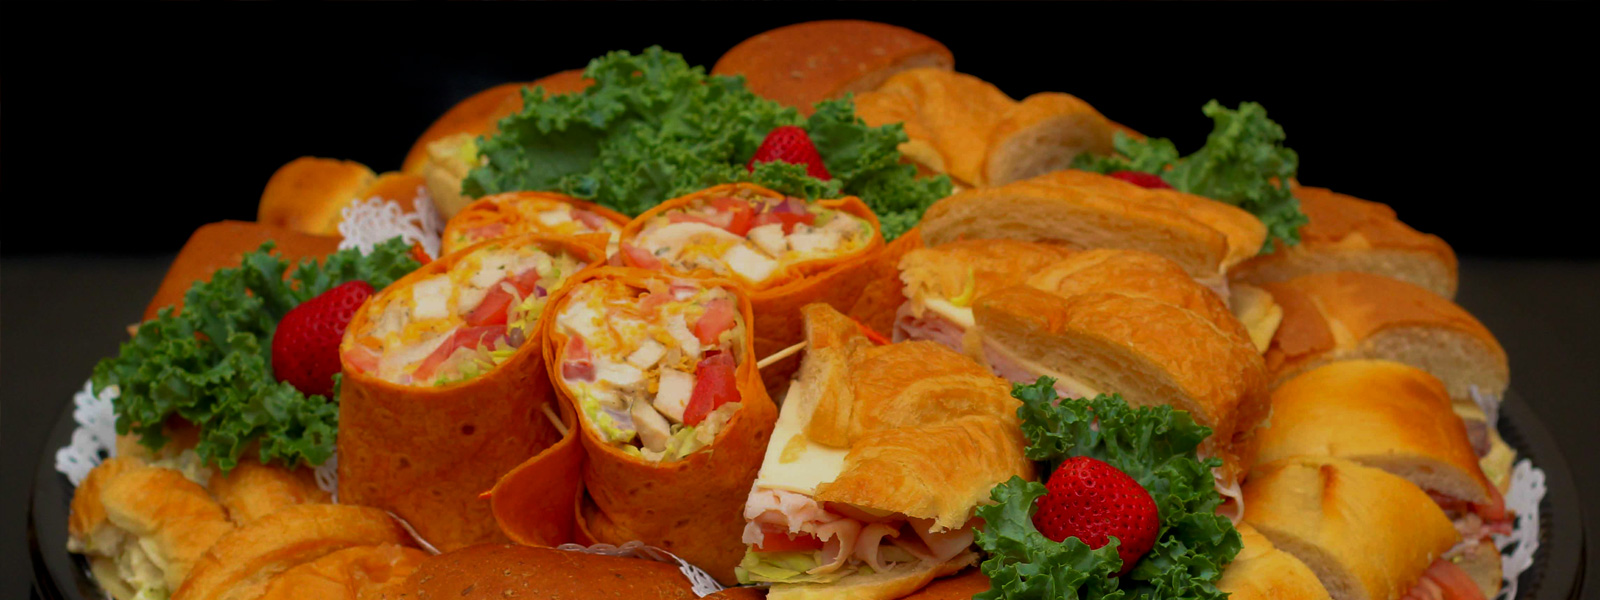 Tray-Full-Of-Sandwiches